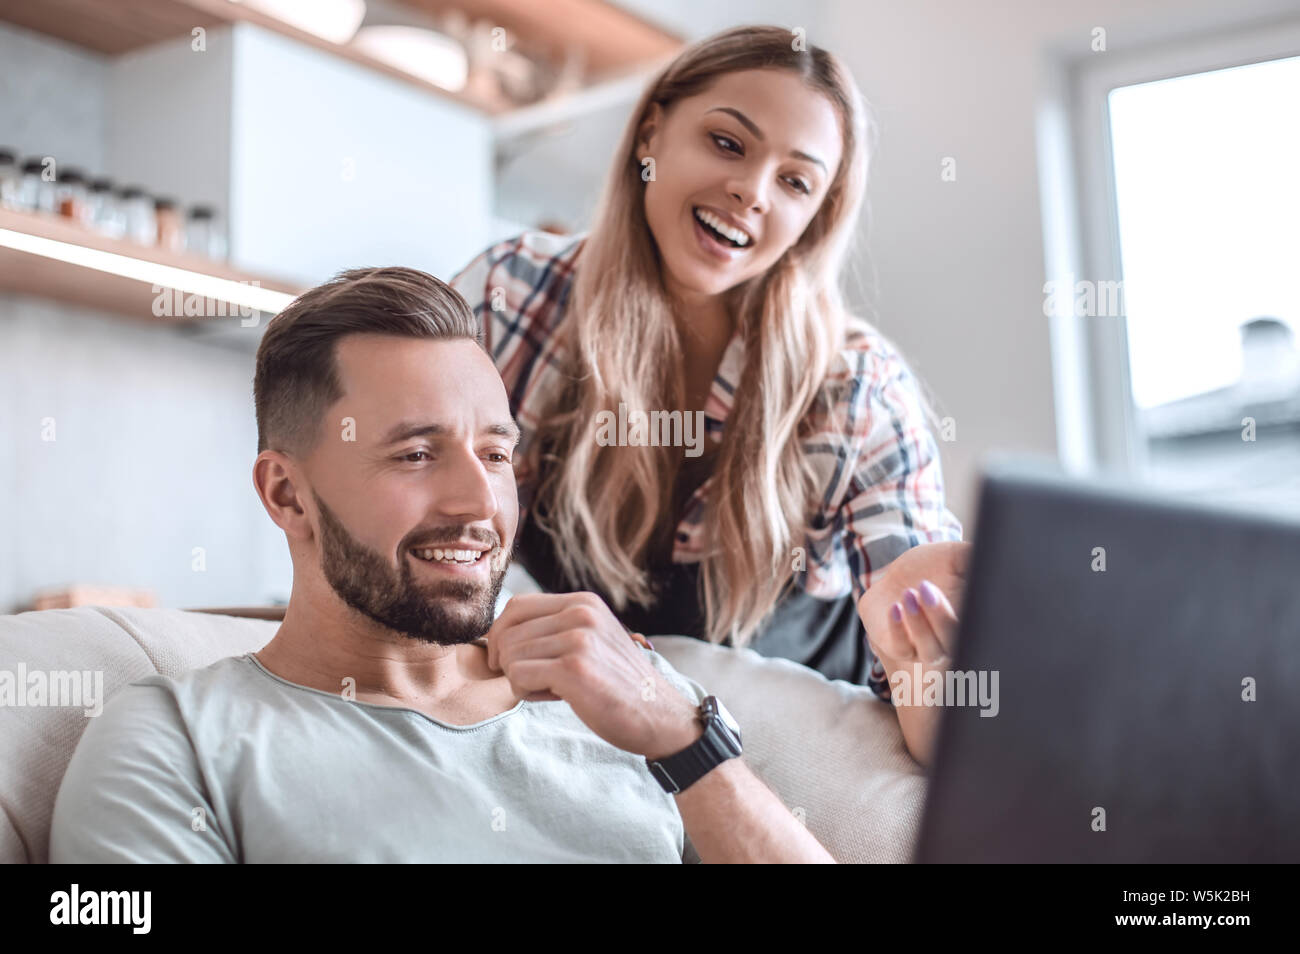 close up. young couple looking at laptop screen. Stock Photo